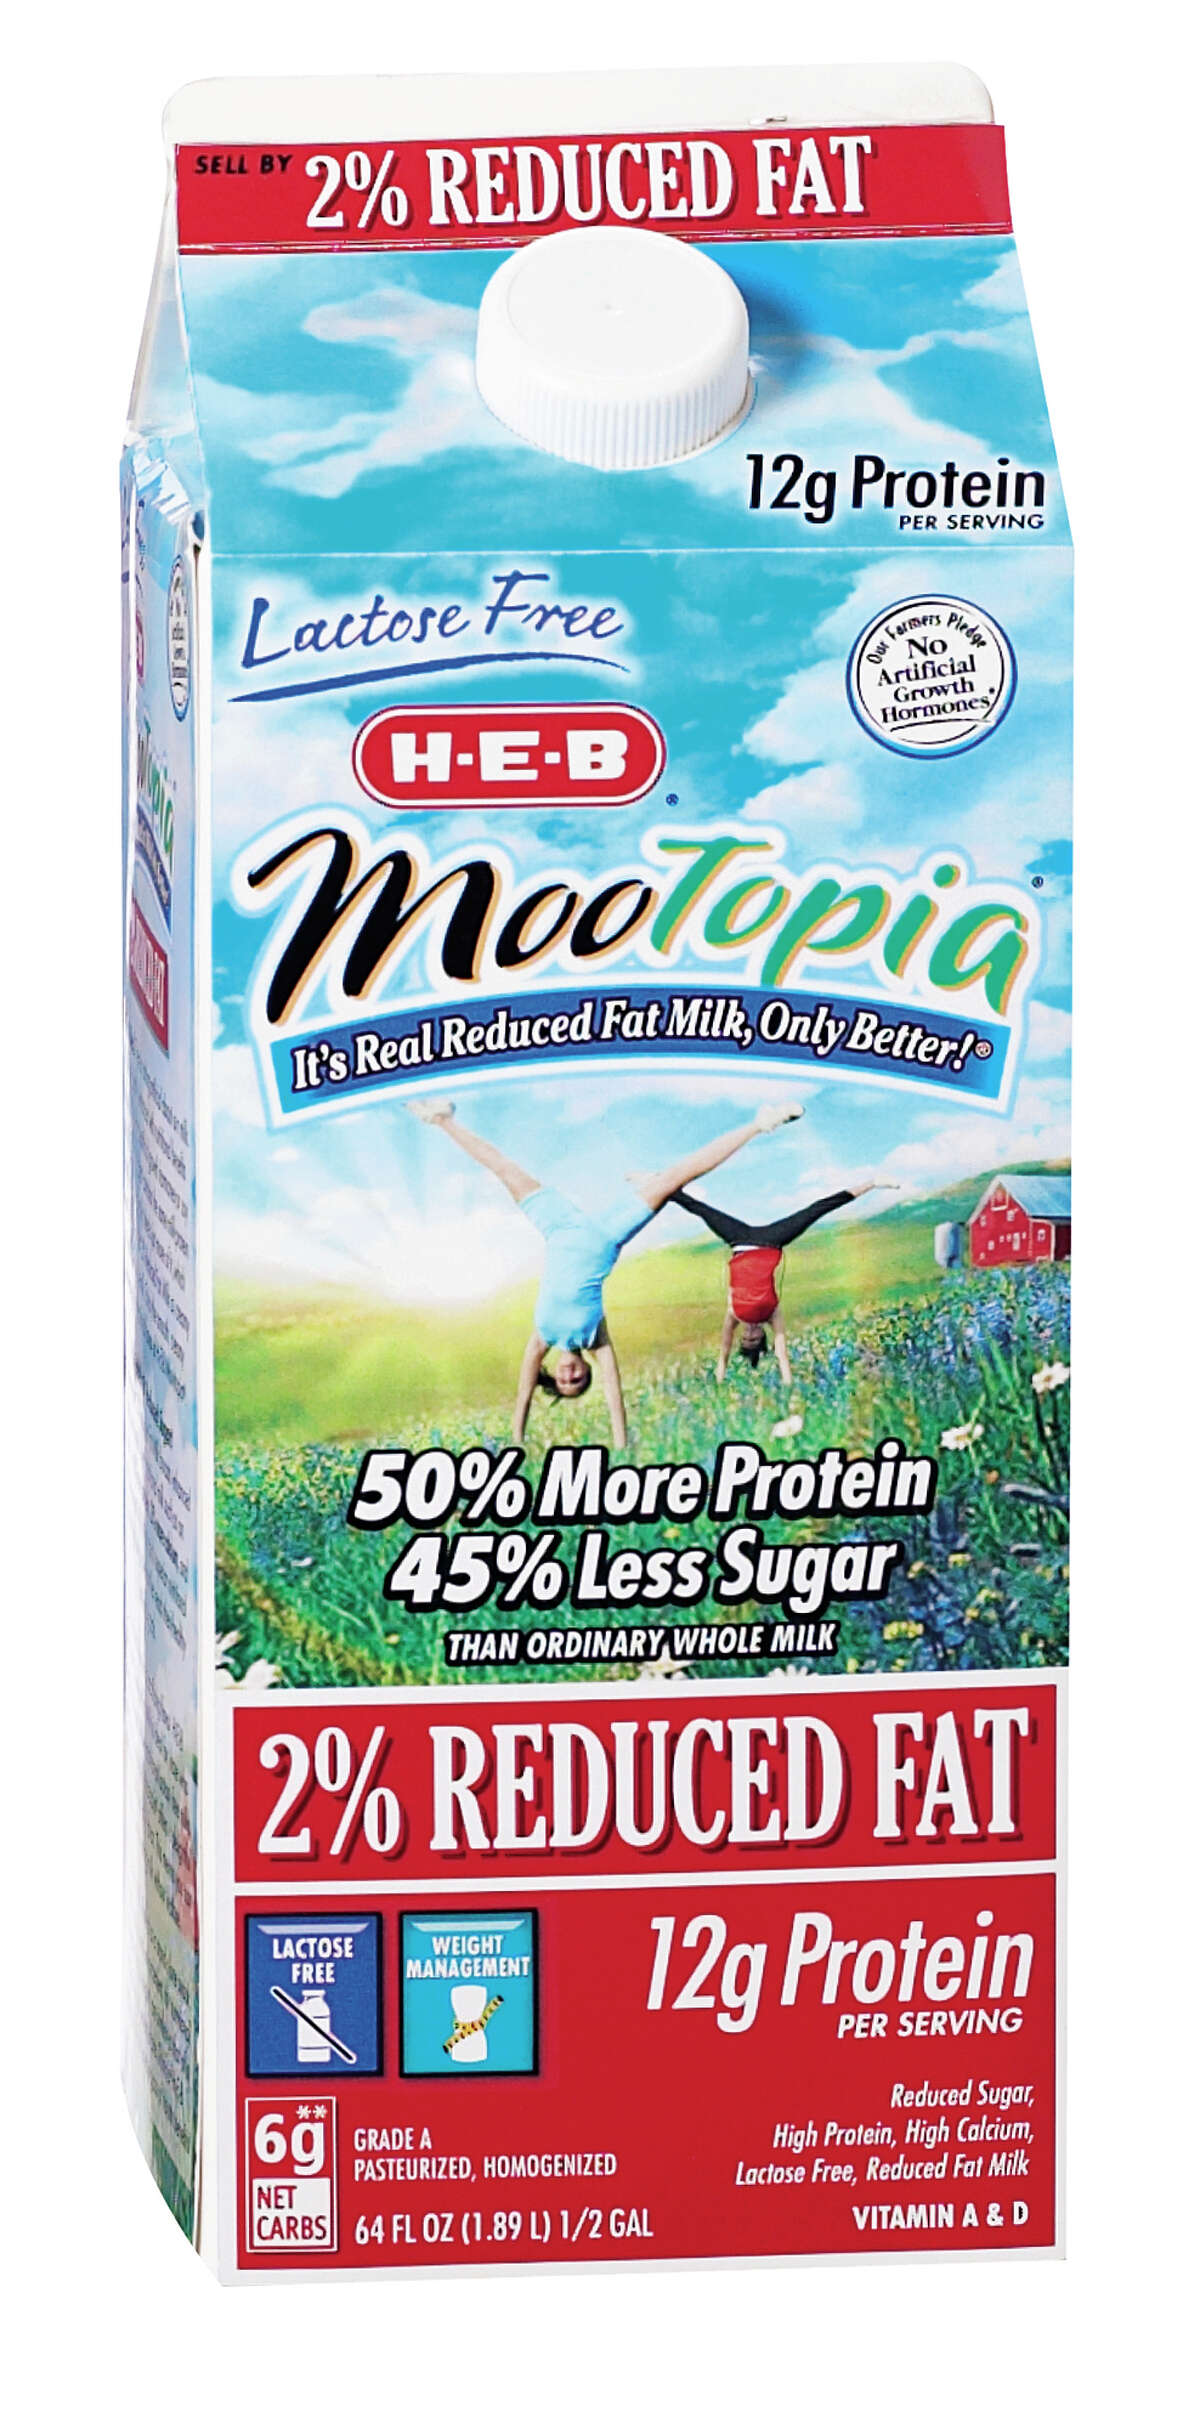 H-E-B worked with farmers to create MooTopia, a lactose-free milk that boosts protein and cuts sugar. MooTopia has proved so popular that distributors have asked if H-E-B would sell the product to other chains, said Bob McCullough, senior vice president.